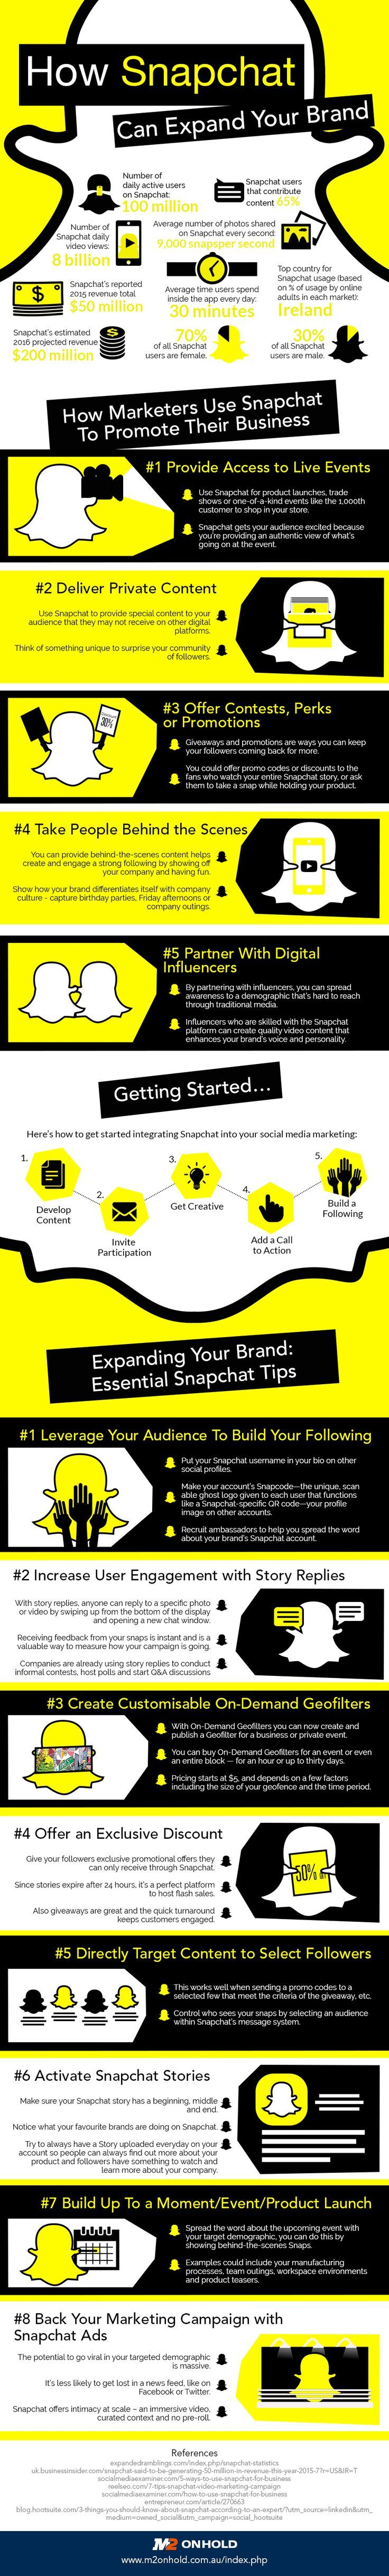 #Snapchat Marketing for Beginners 13 Tips to Promote Your Business